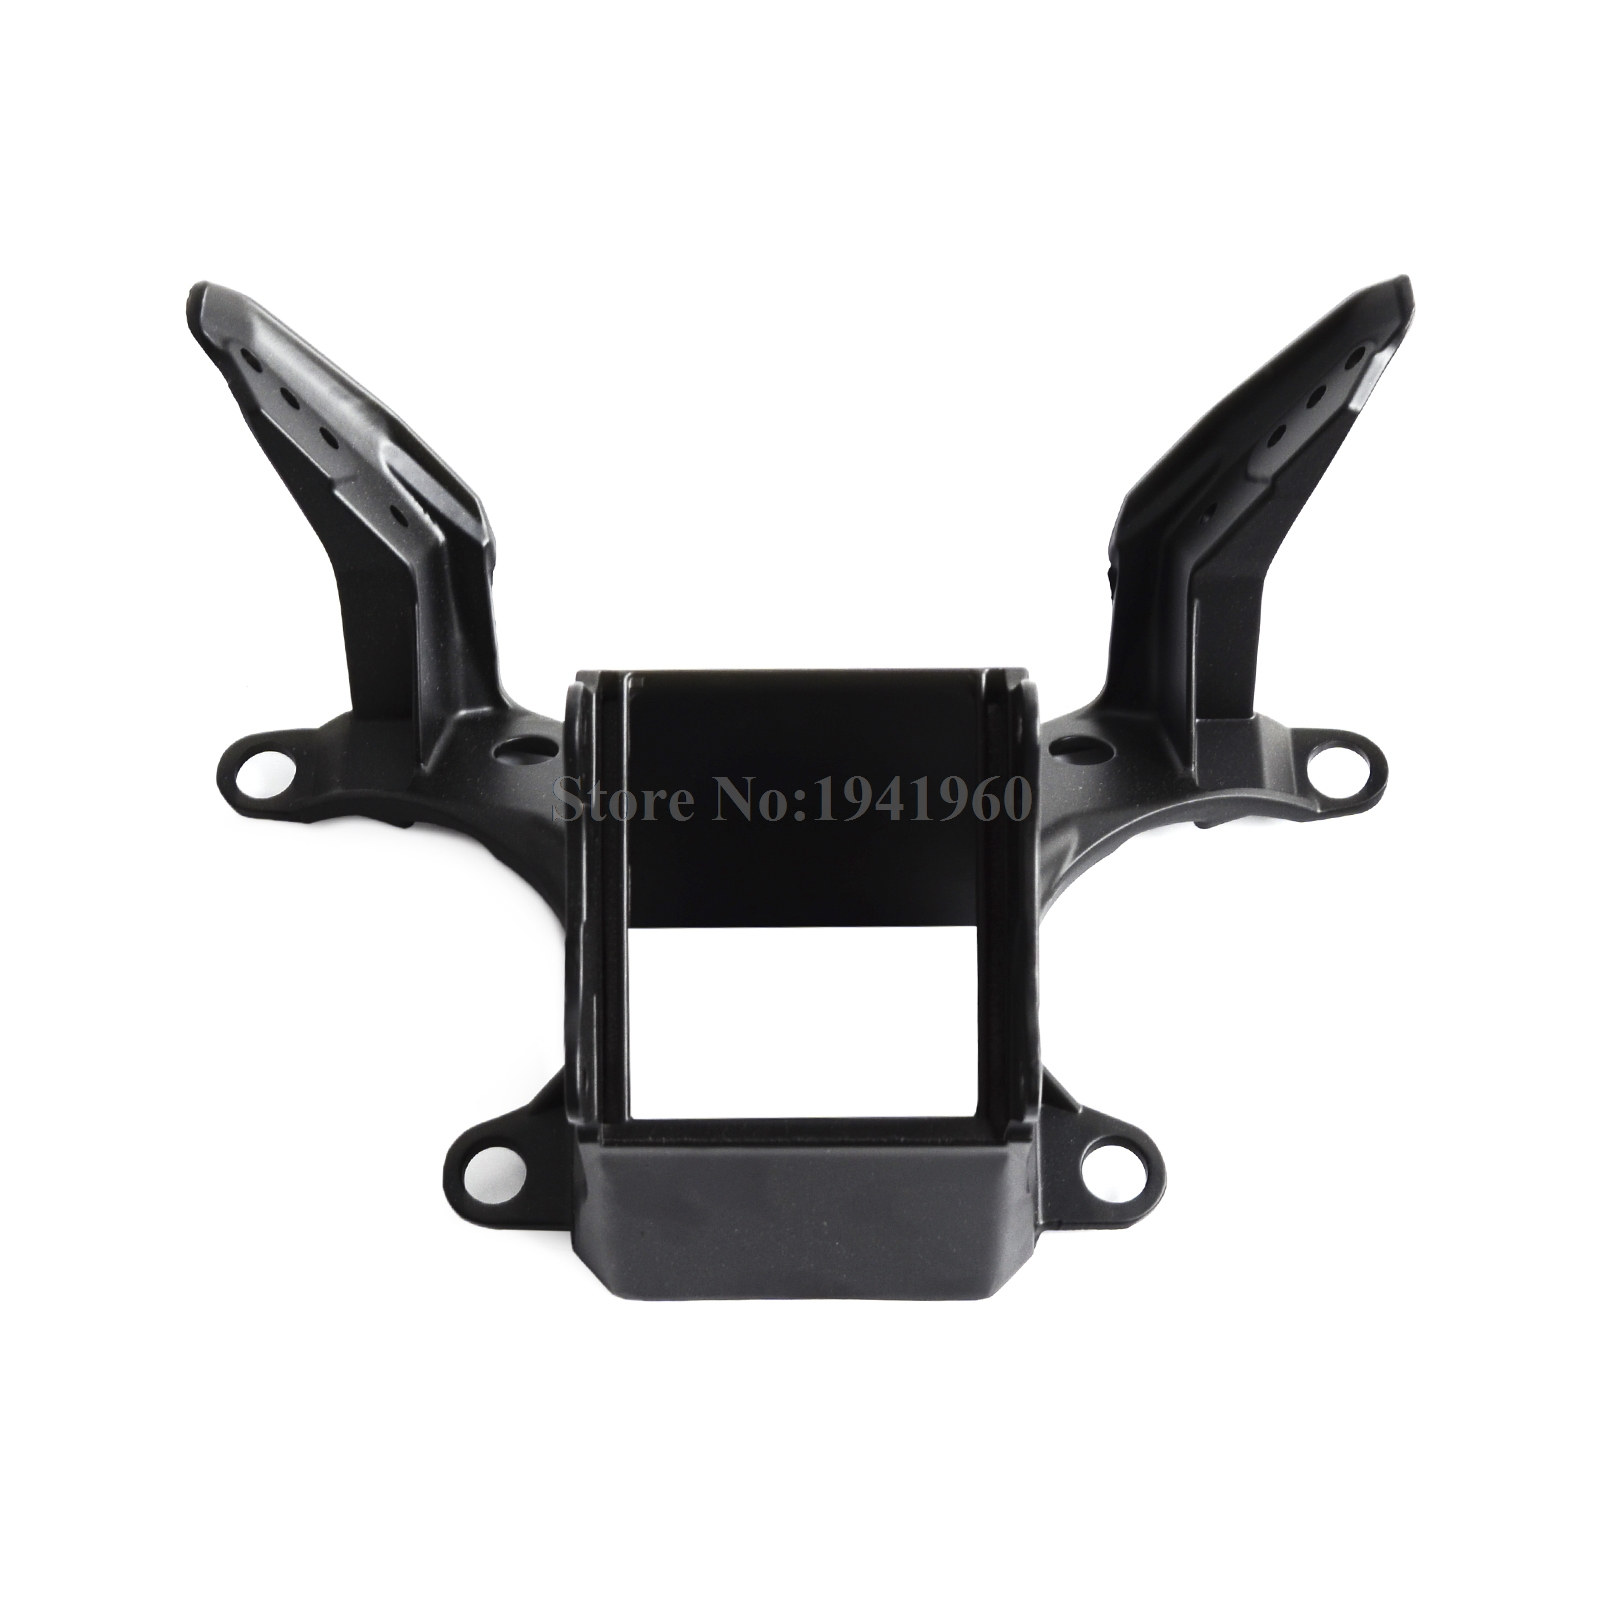 NICECNC Motorcycle Upper Headlight Fairing Stay Bracket For Yamaha YZF-R6 YZF R6 YZFR6 2008 2009 2010 2011 2012 2013 2014 Black motorcycle mounting bracket kit for yamaha fz1 fazer 2006 2015 2007 2008 2009 2010 2011 2012 2013 2014